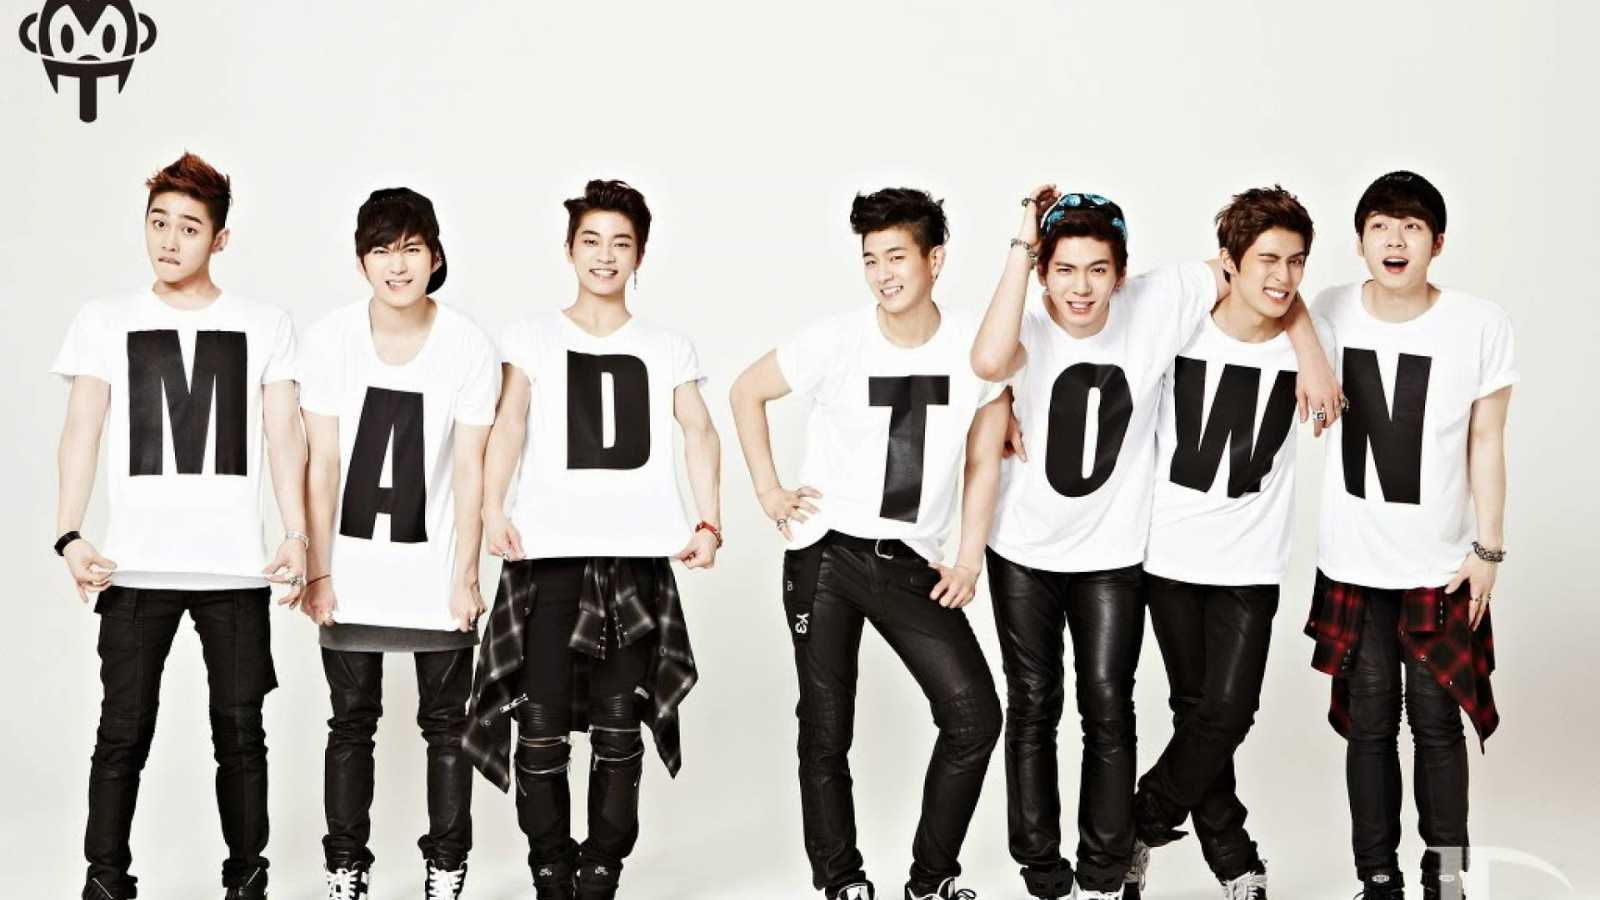 MADTOWN © MAD TOWN Official Facebook Page, J. Tune Camp